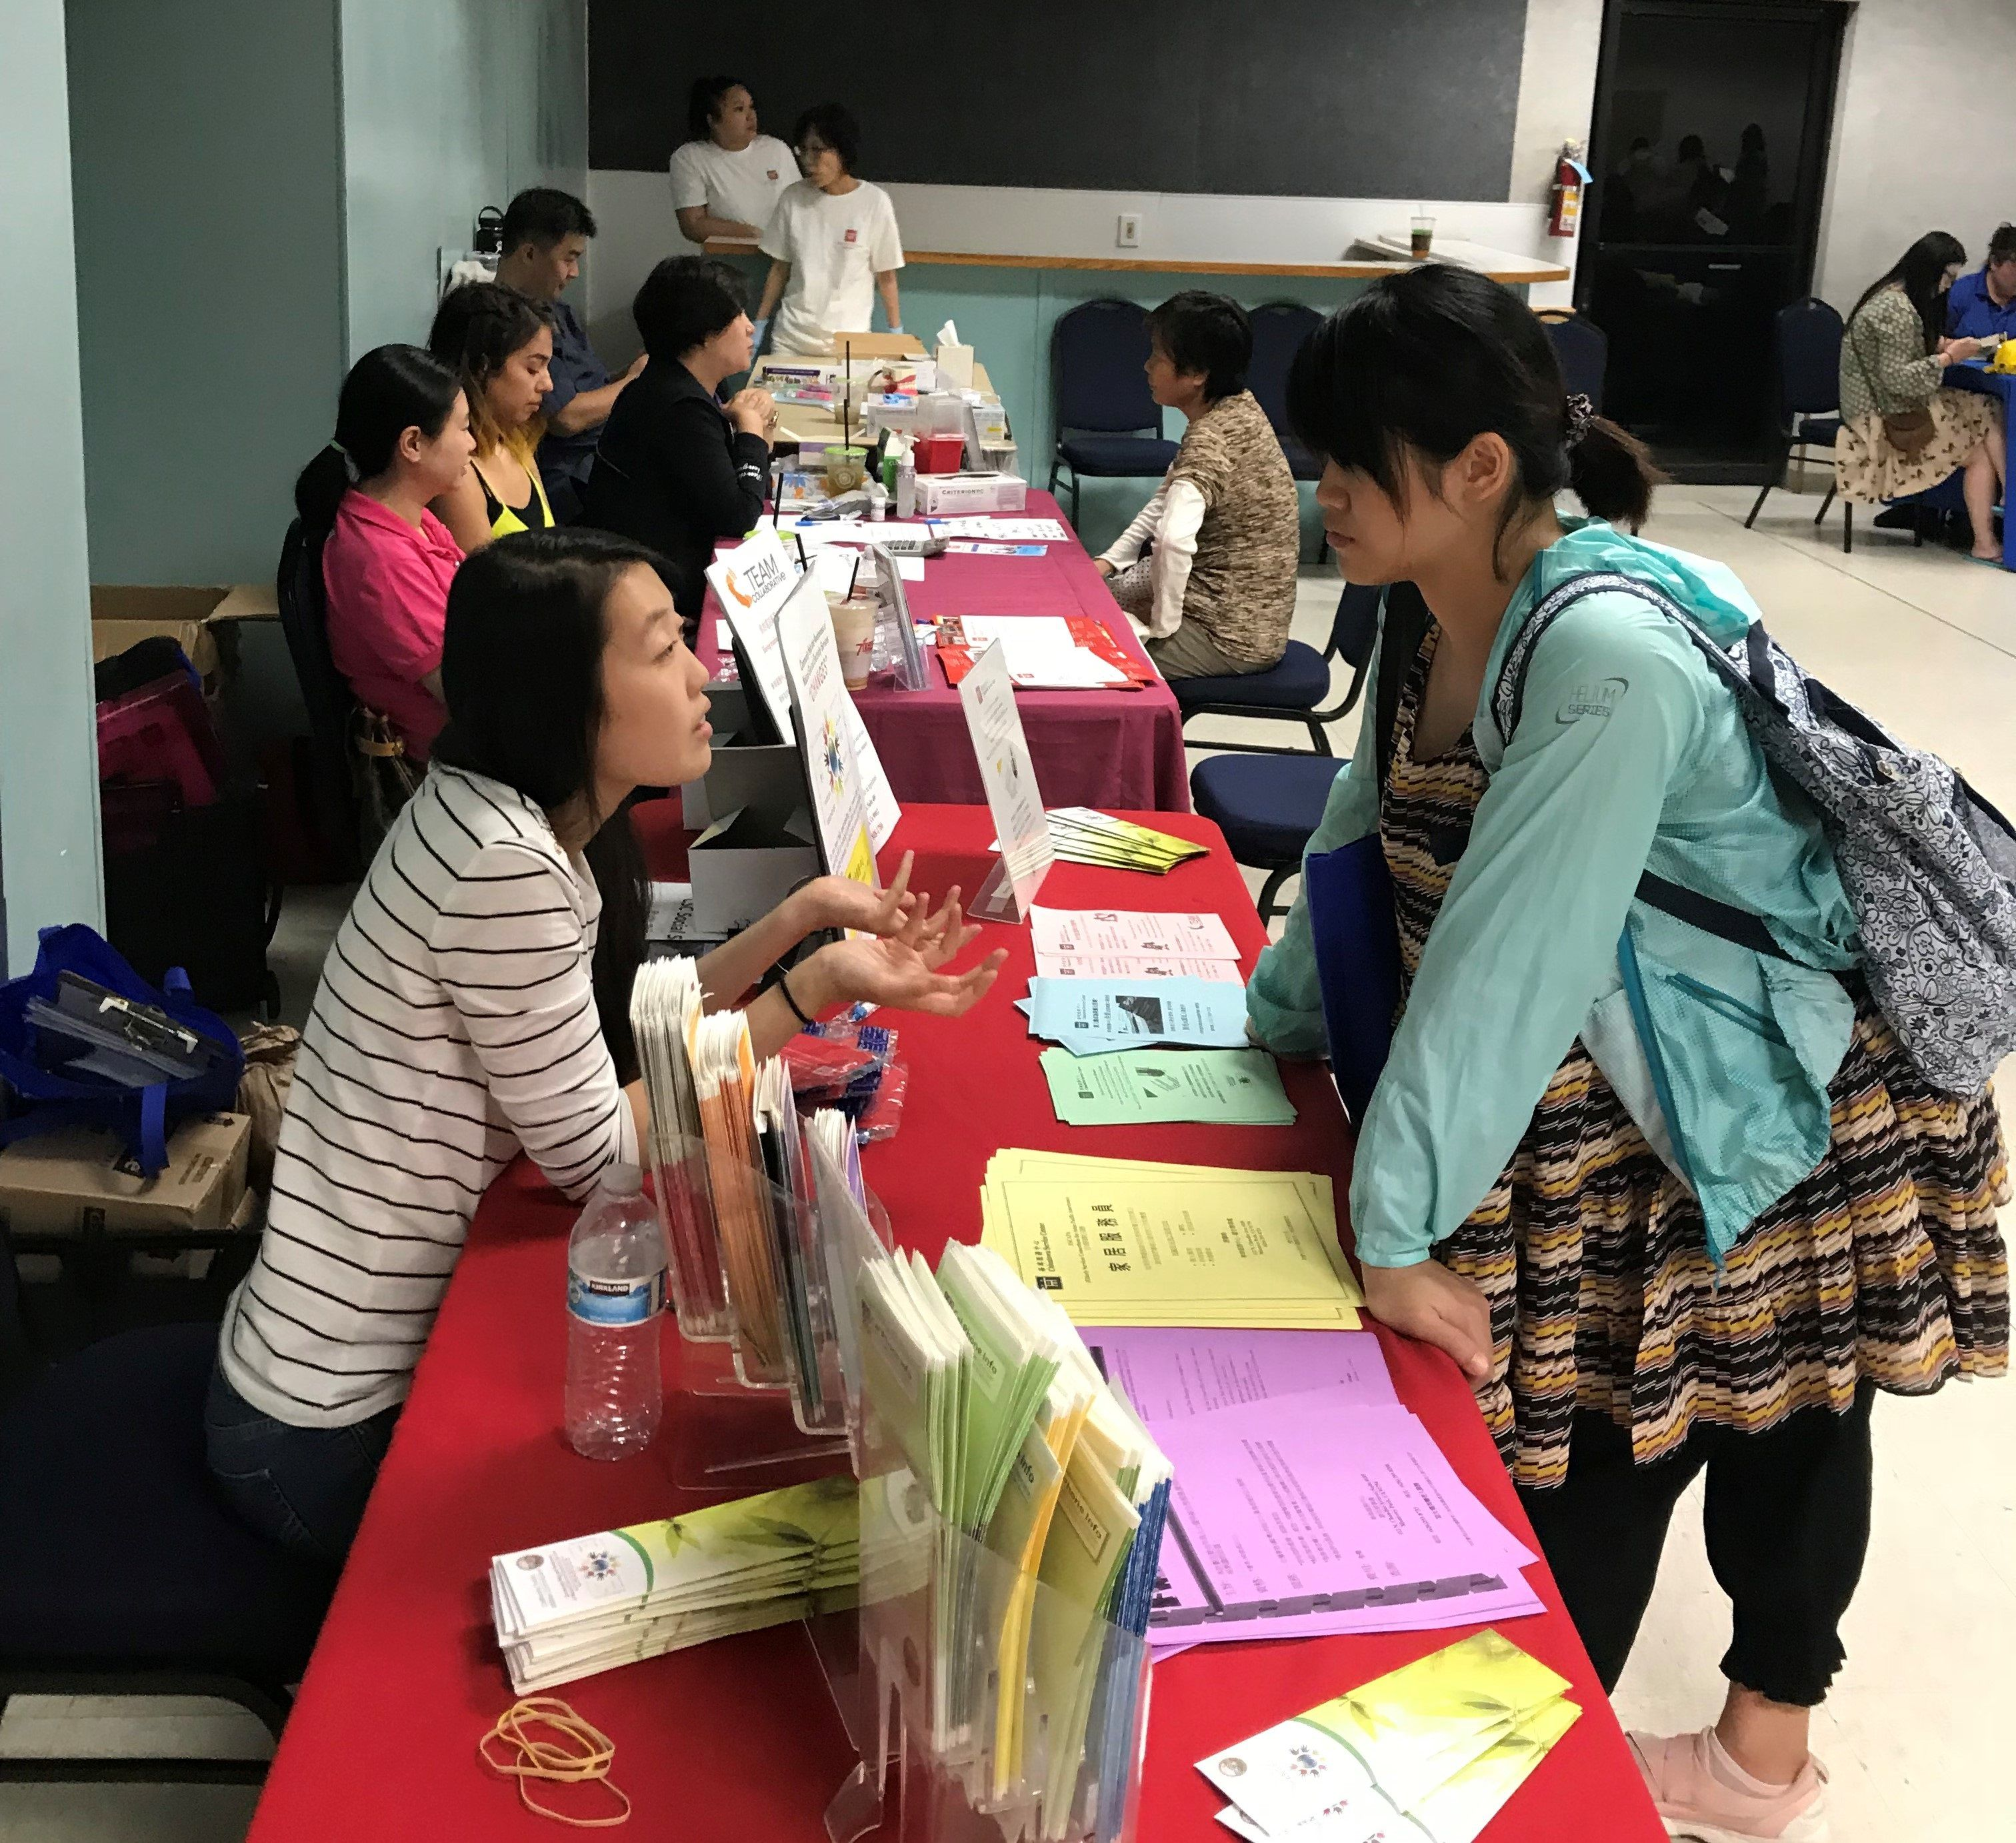 Health education image by Chinatown Service Center on